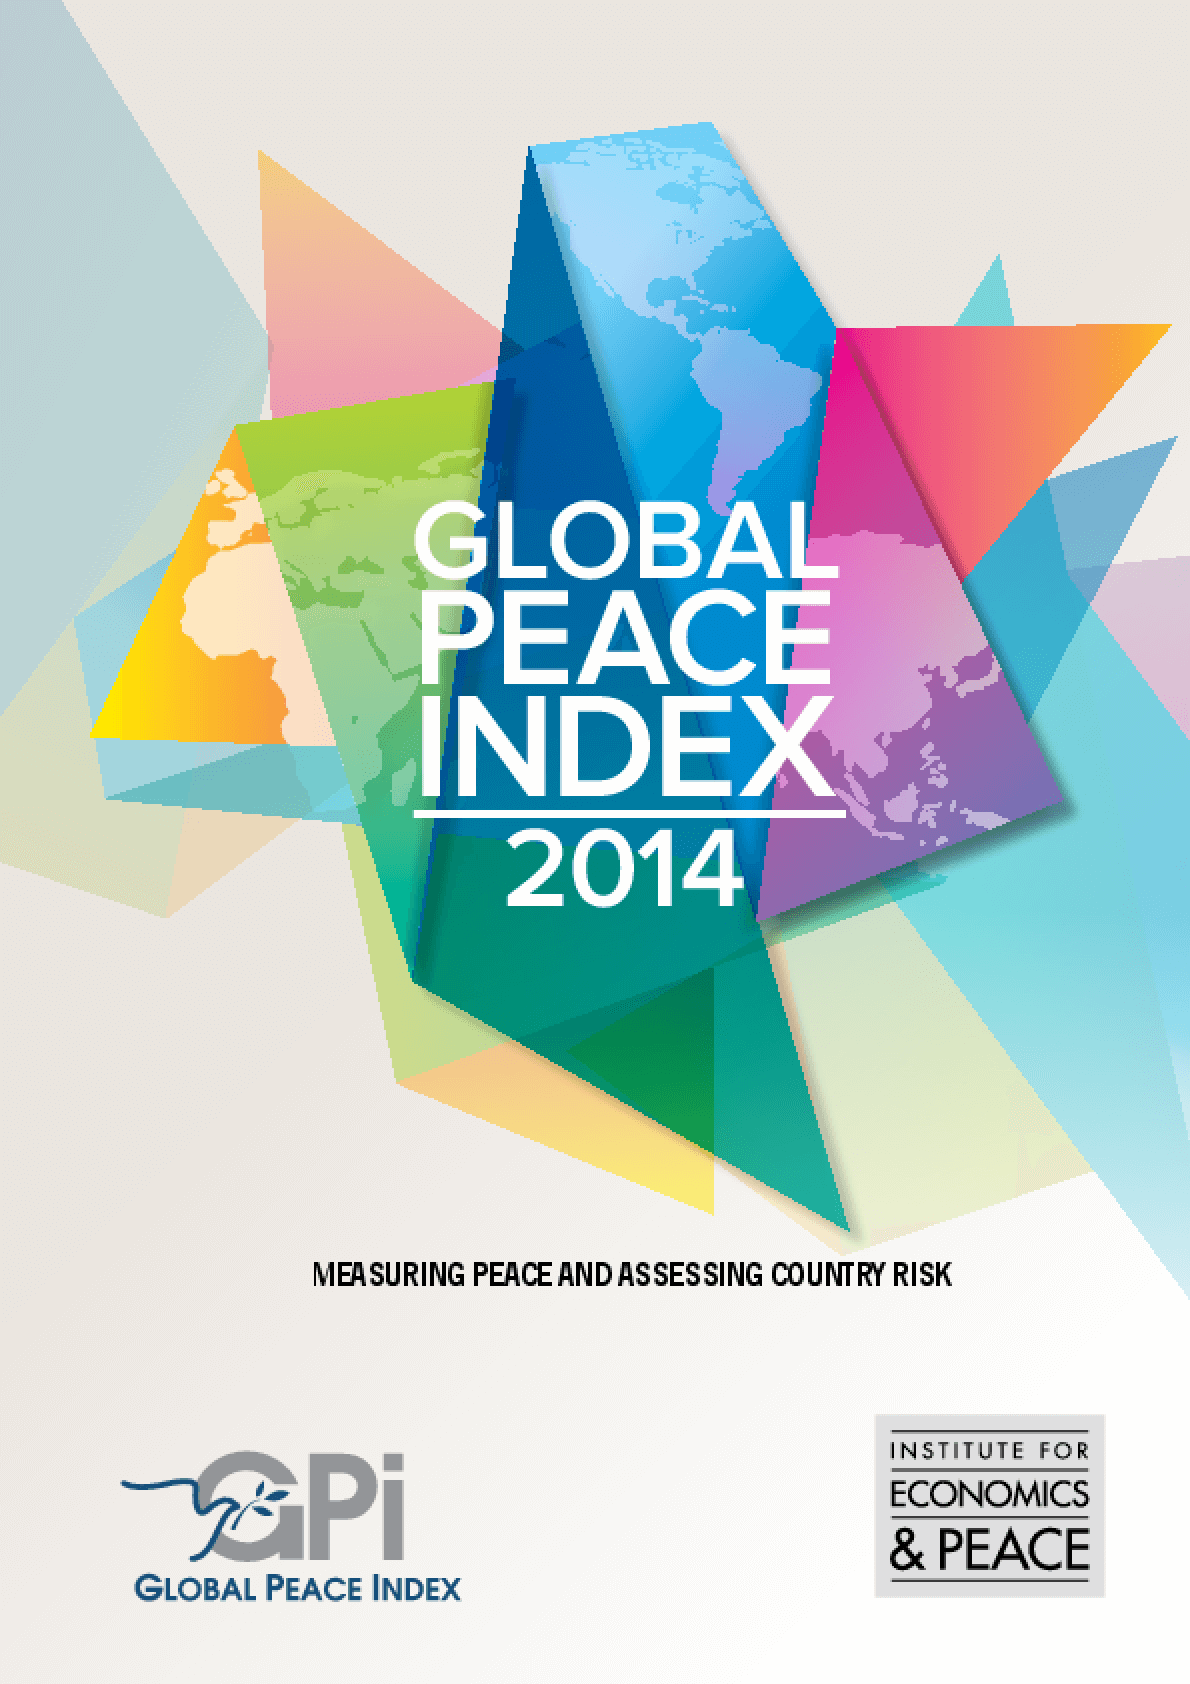 Global Peace Index 2014: Measuring Peace and Assessing Country Risk